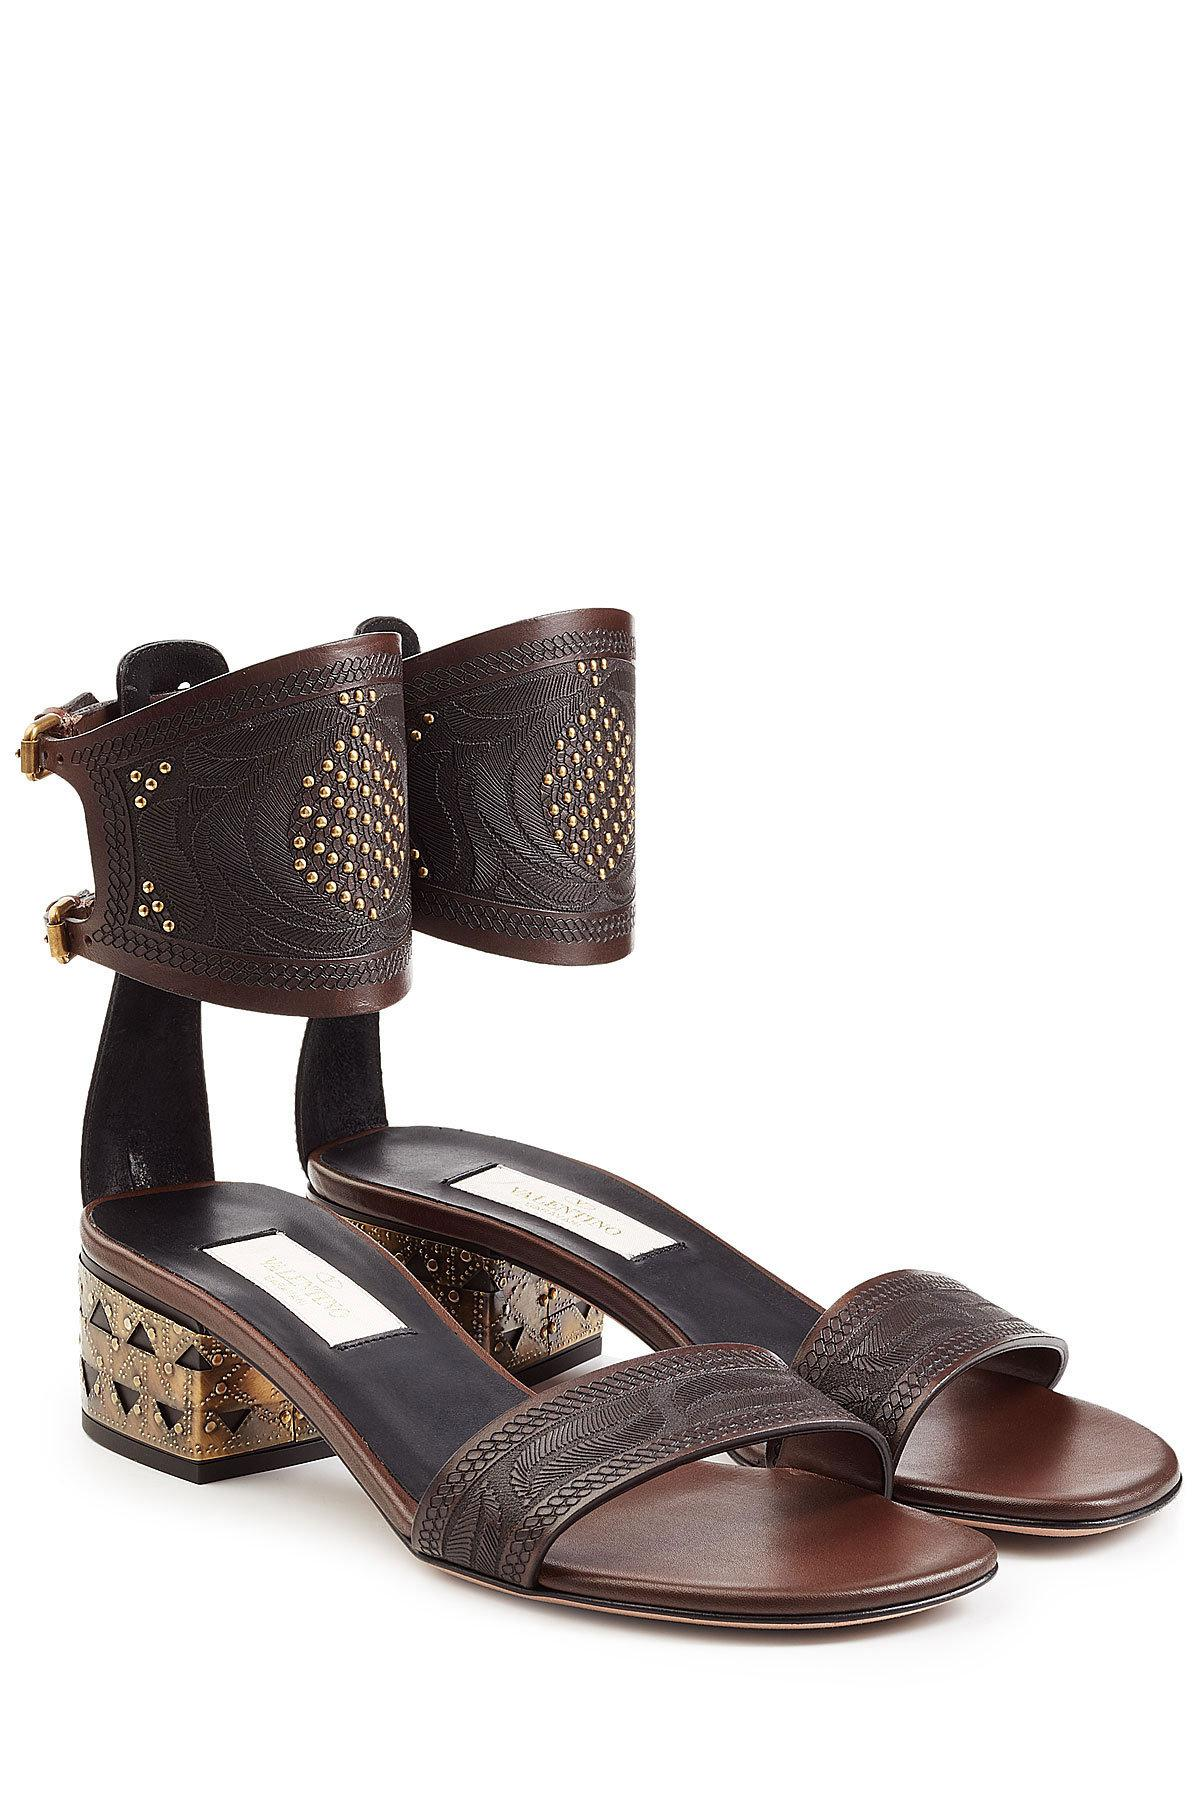 best wholesale cheap price Valentino Embossed Embellished Sandals discount manchester great sale TbrBDuS6